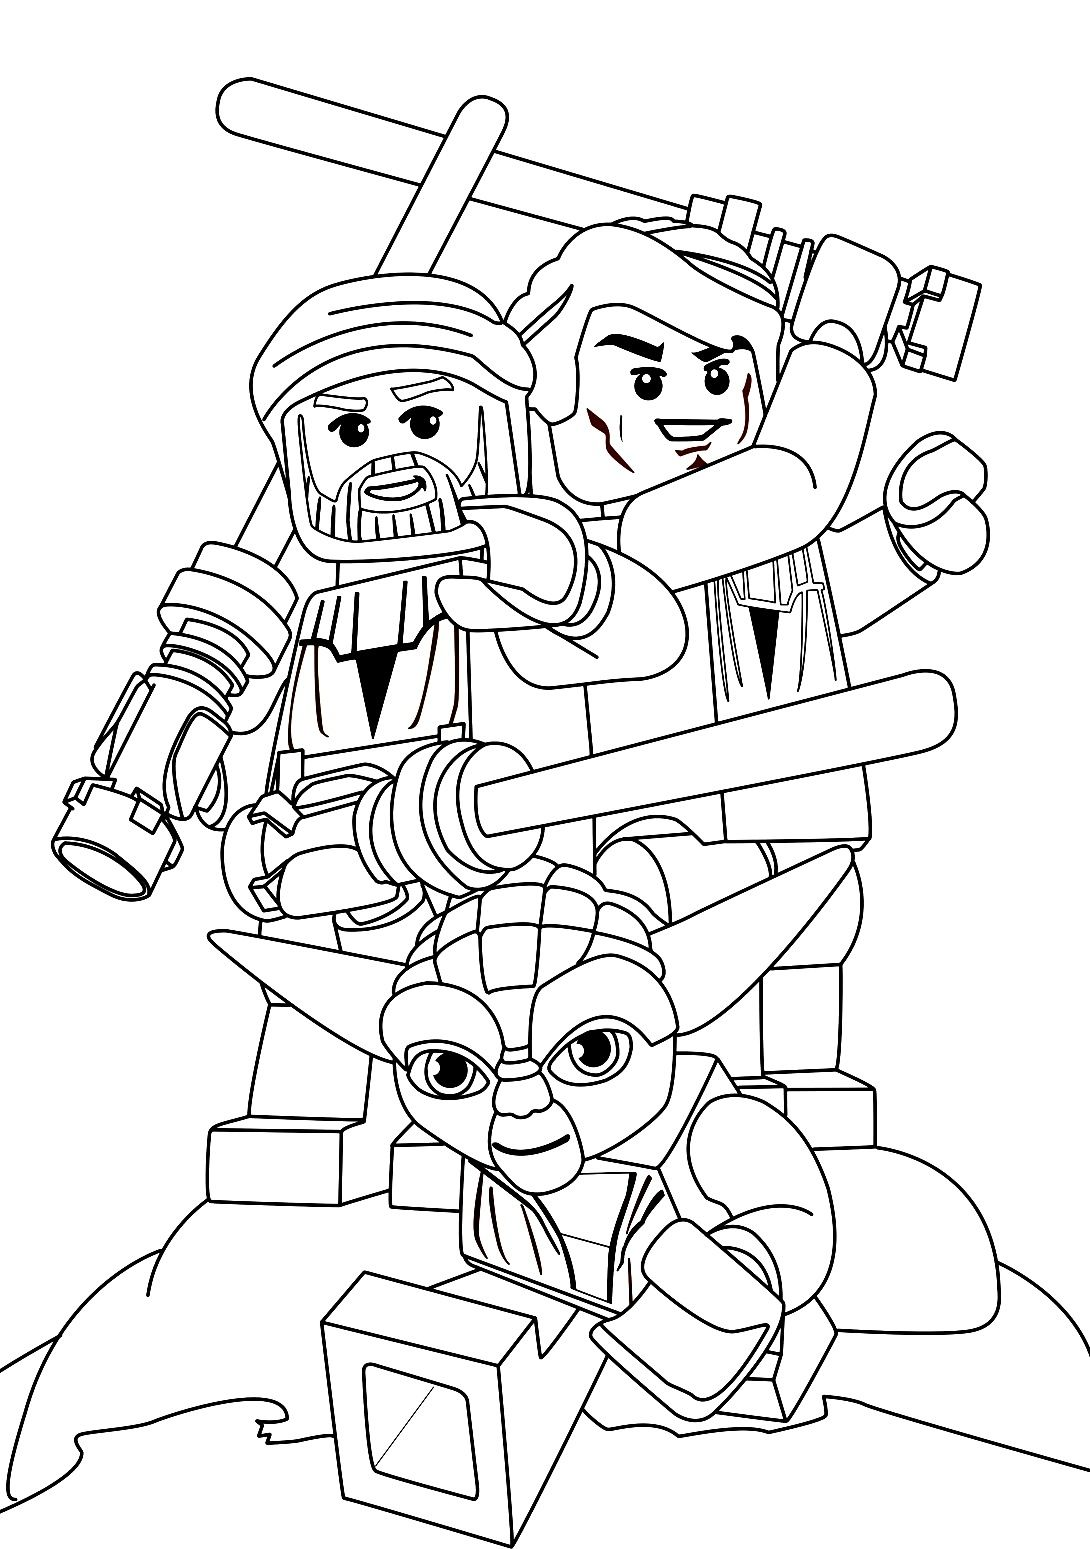 Lego Star Wars Coloring Pages Star Wars Coloring Sheet Star Wars Coloring Book Lego Coloring Pages